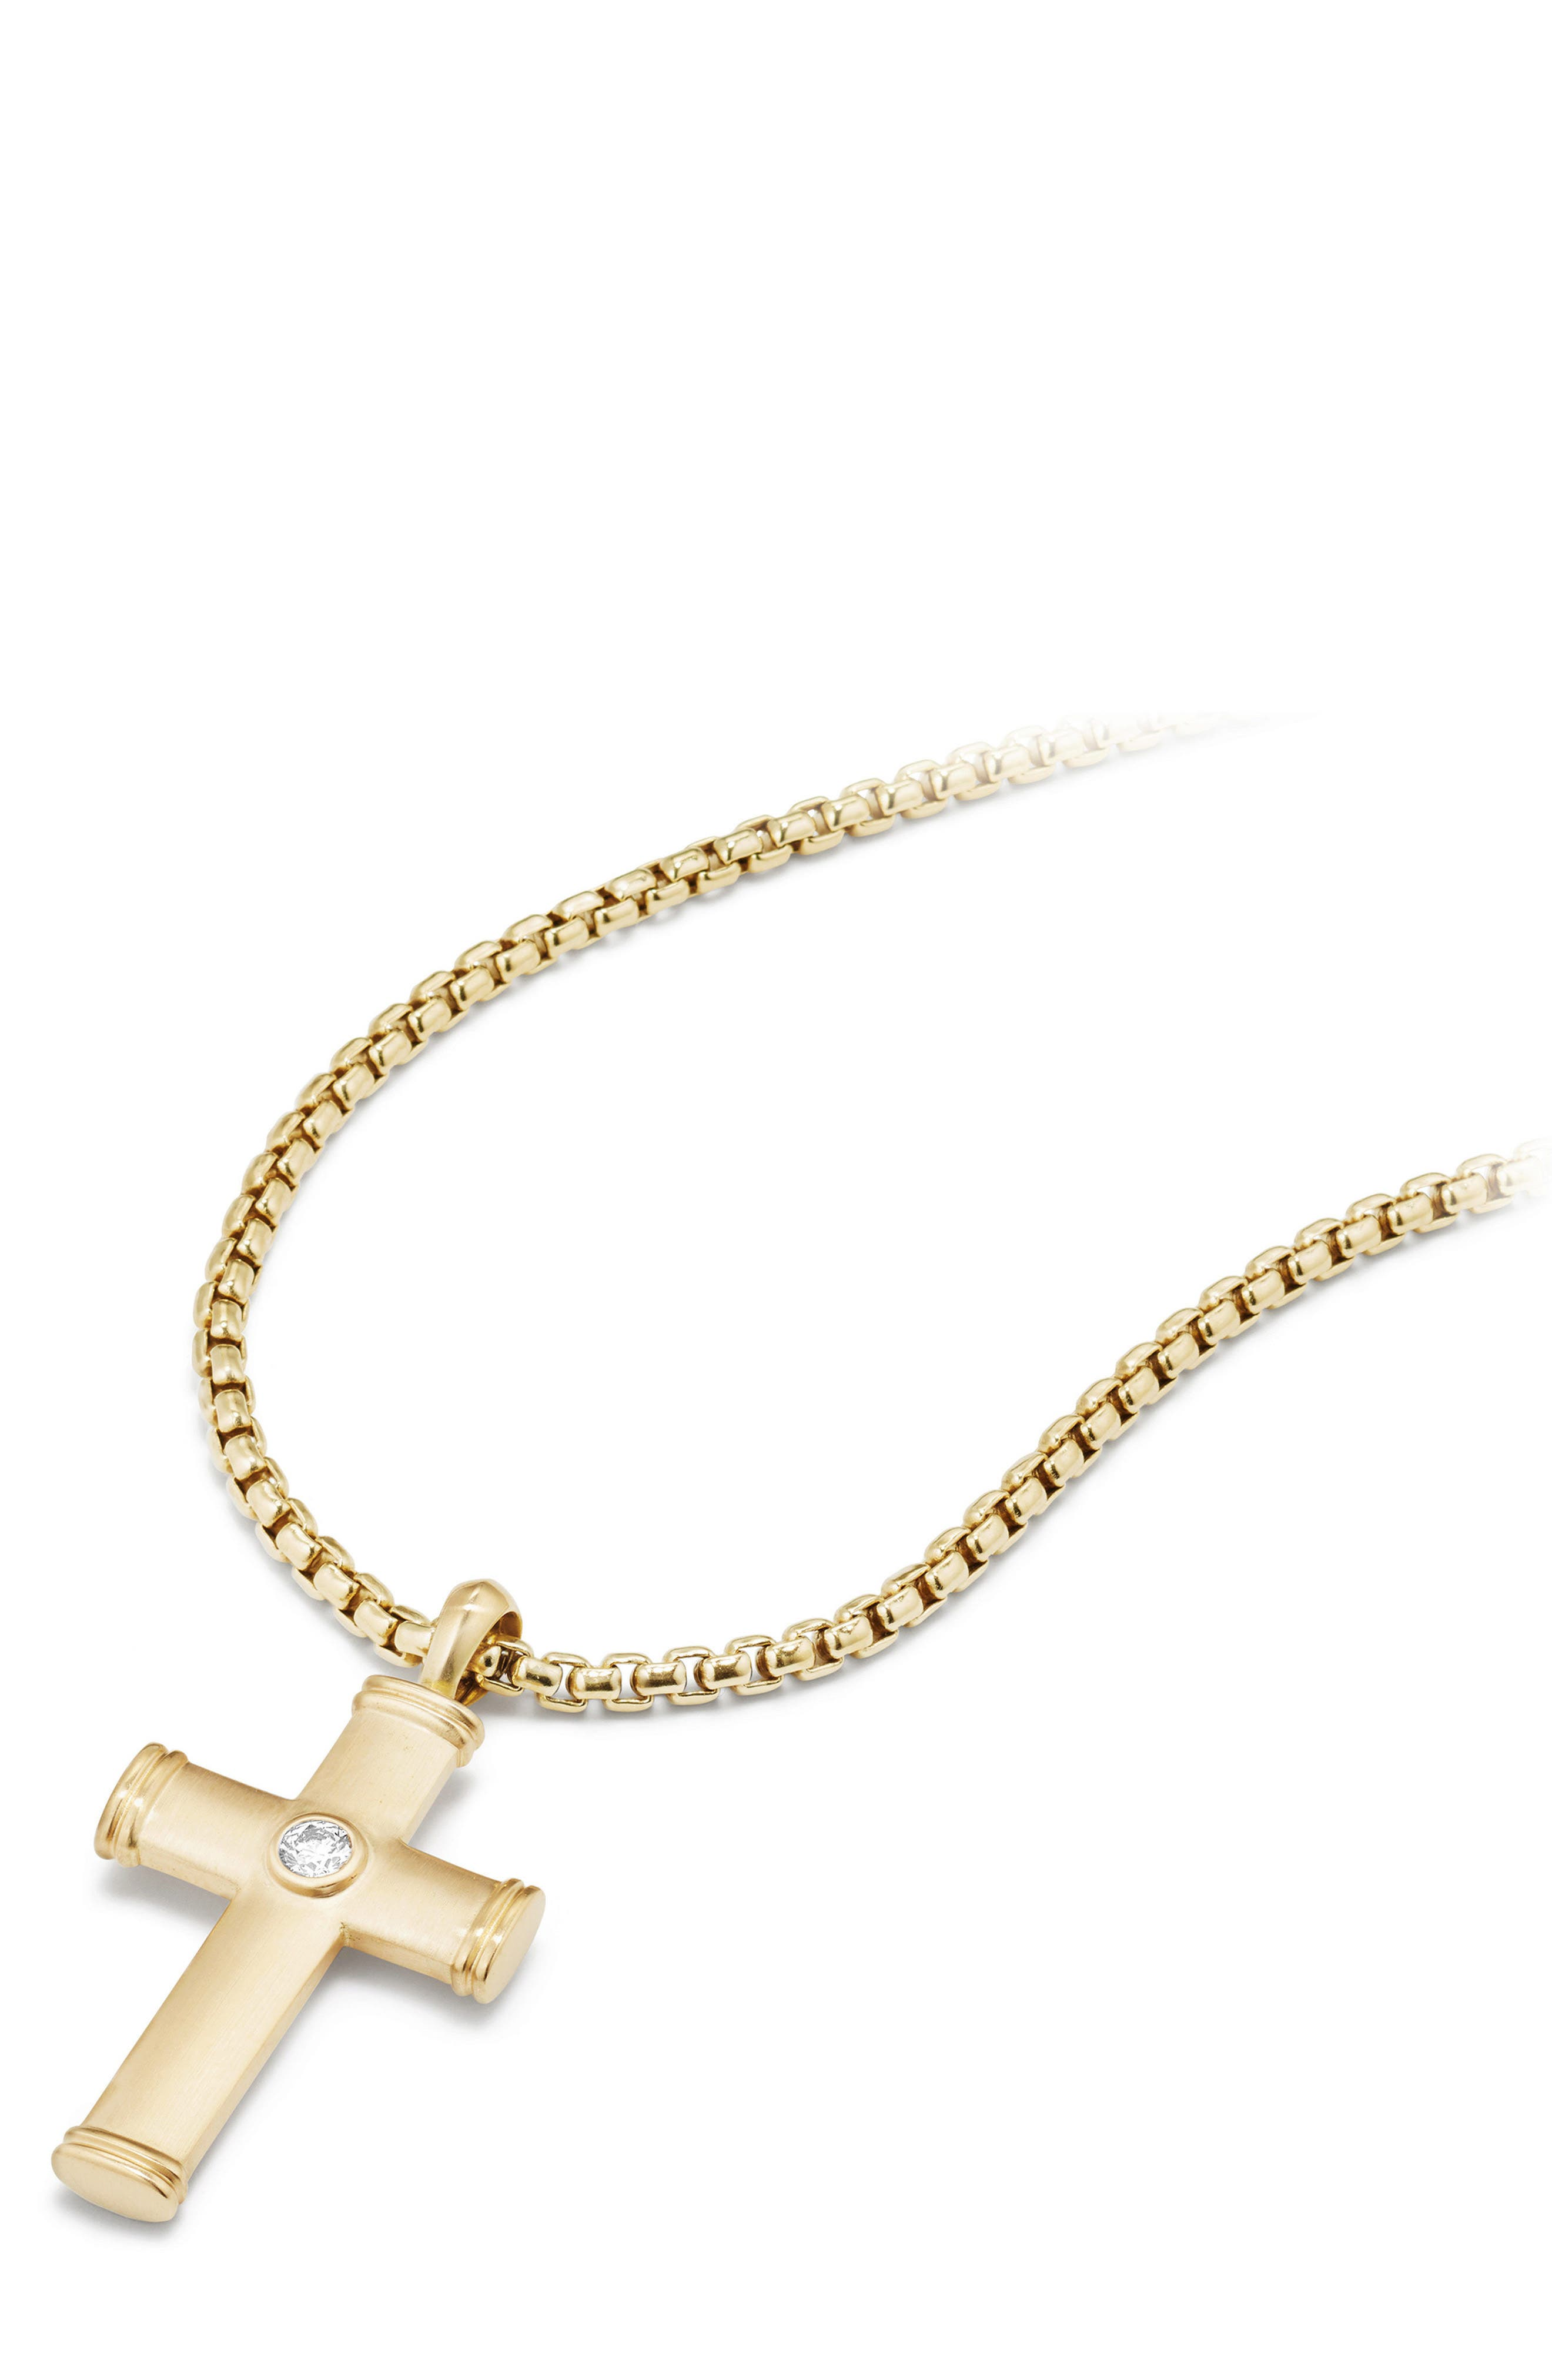 Streamline Cross Tag with Diamonds in 18K Gold,                             Alternate thumbnail 2, color,                             Gold/ Diamond